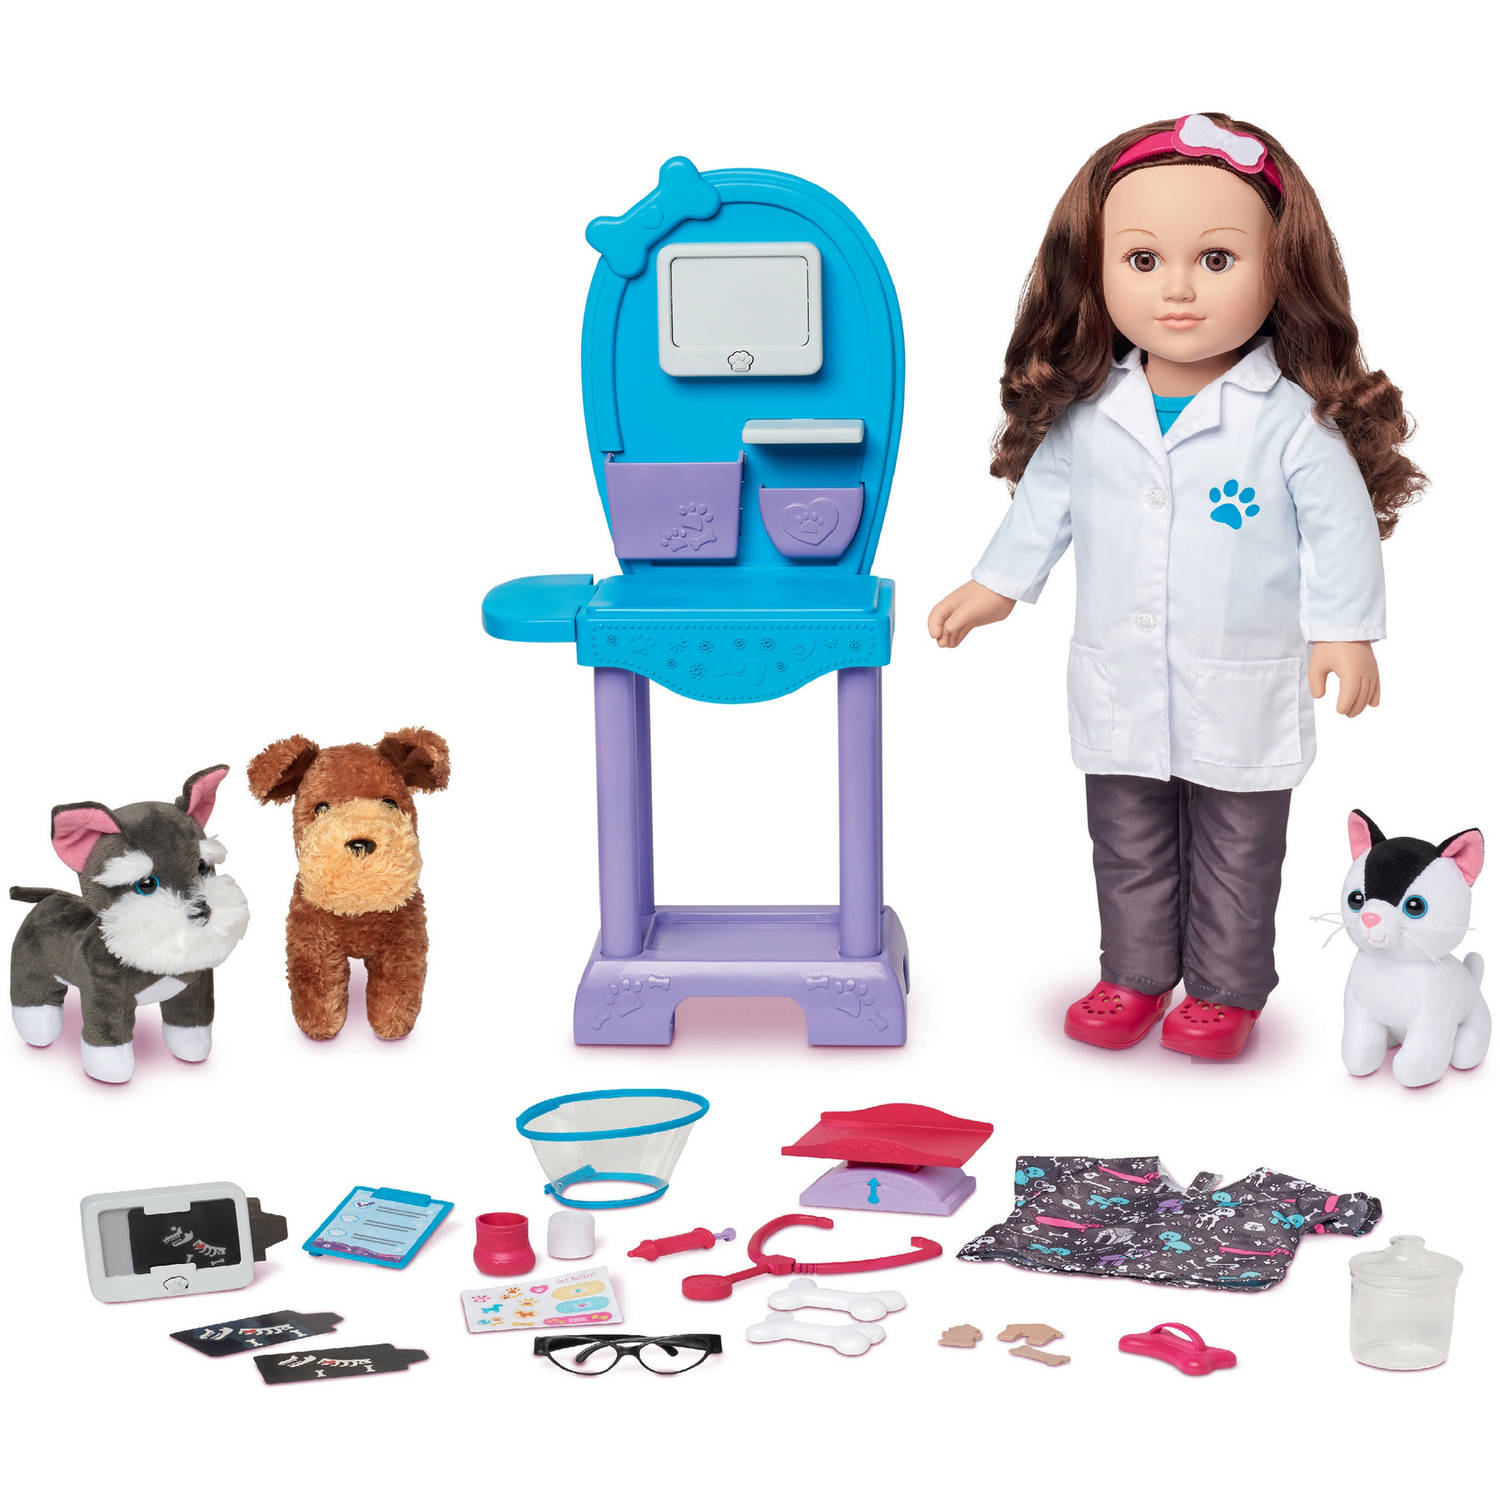 "My Life As 18"" Doll of the Year Vet Doll Play Set, Caucasian with Brown Hair"